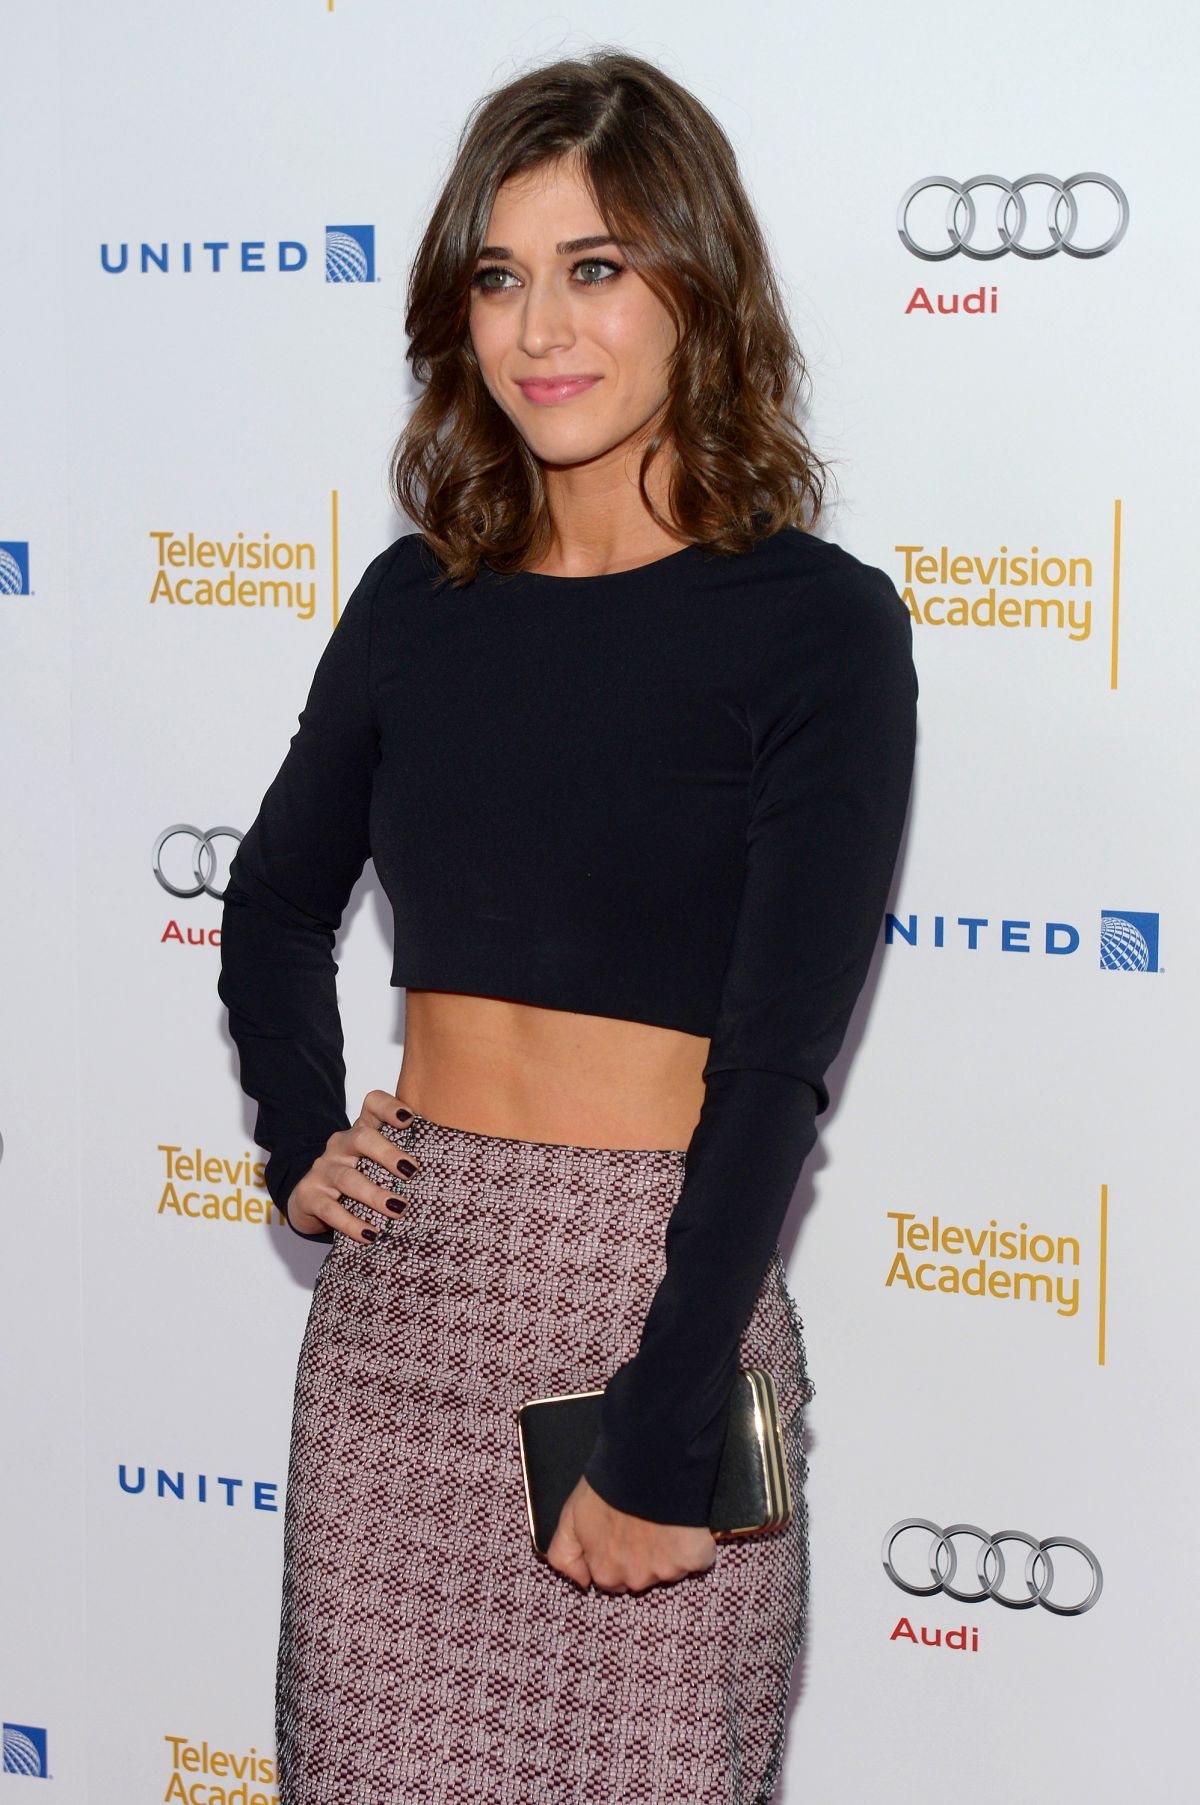 LIZZY CAPLAN at Emmy Awards Performers Nominee Reception